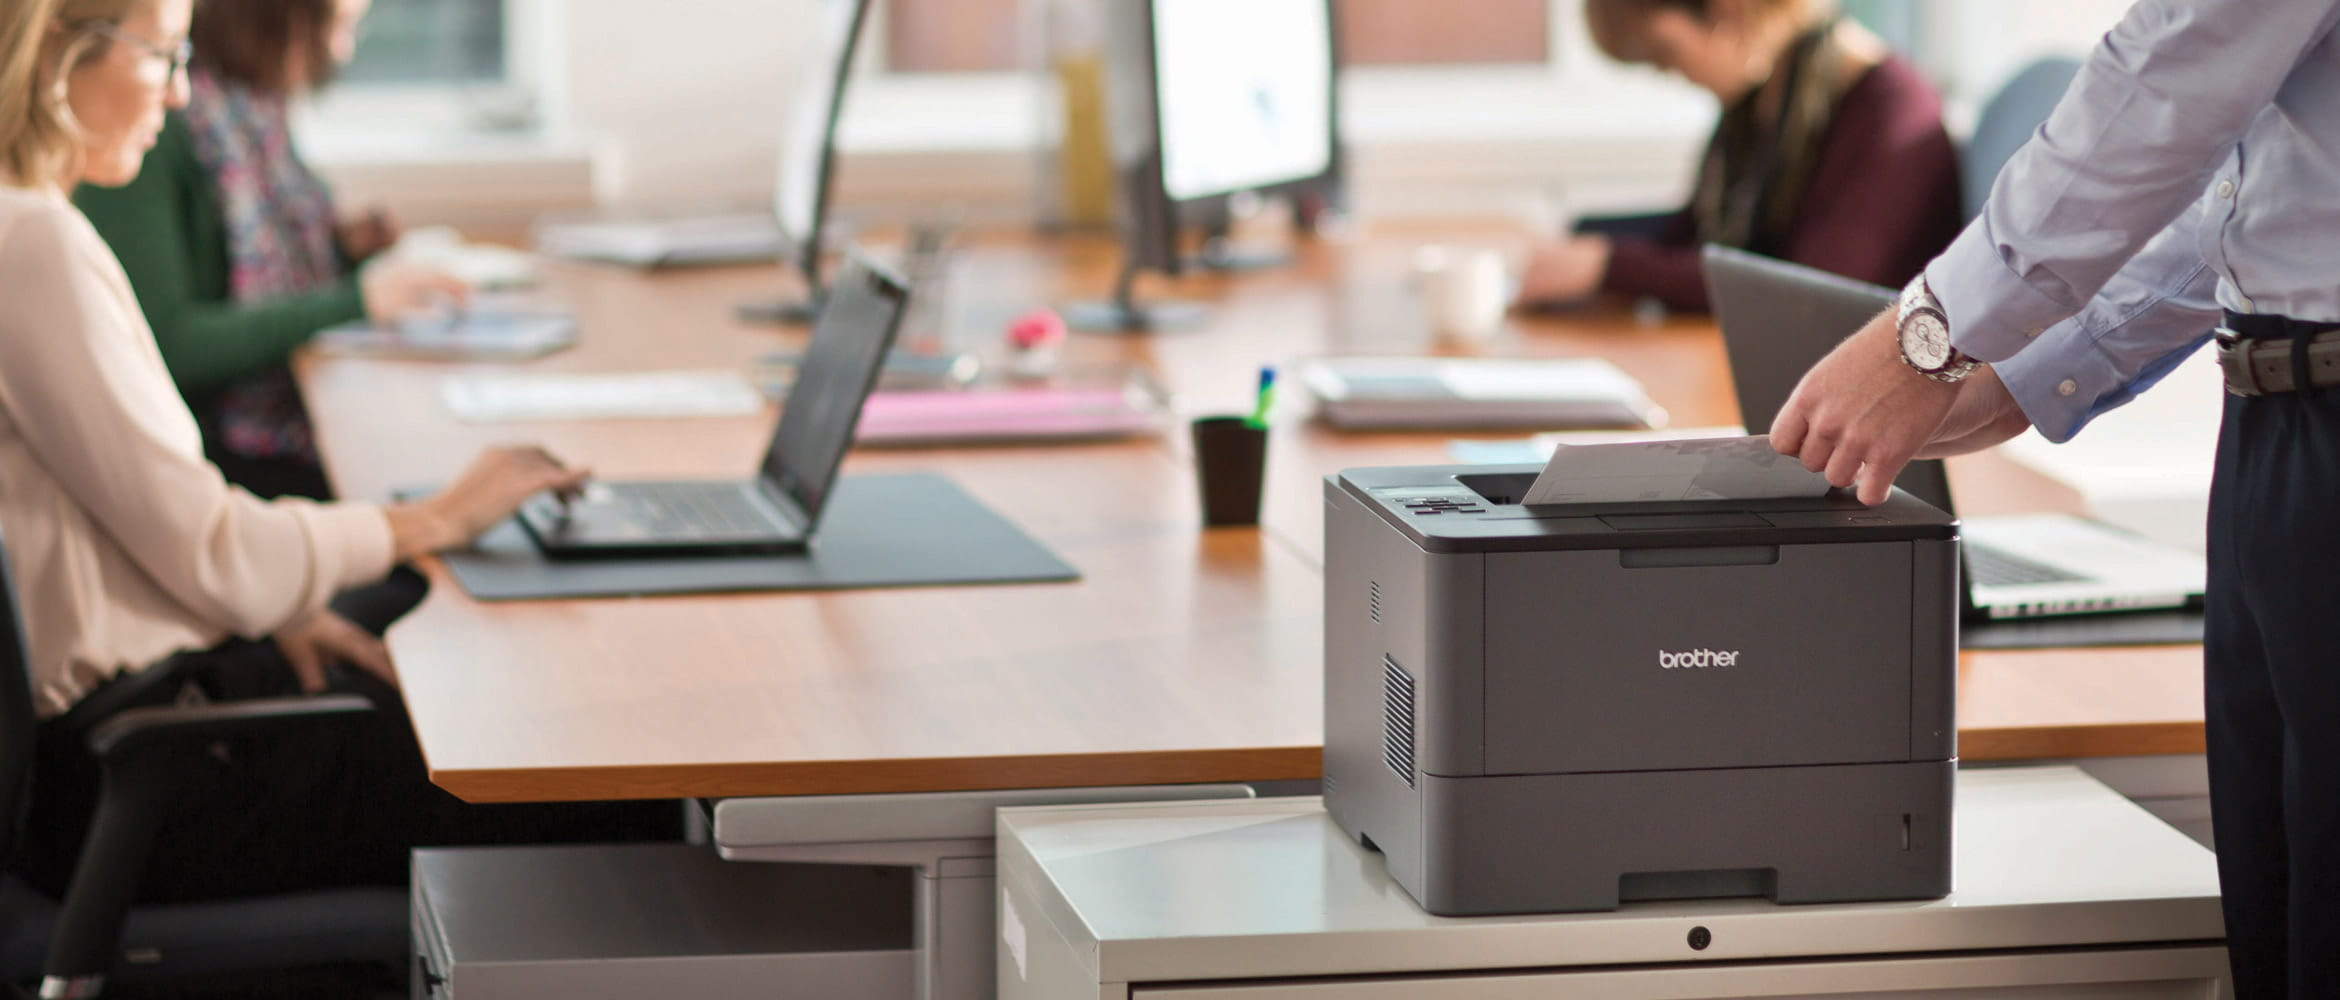 Brother-mono-laser-printers